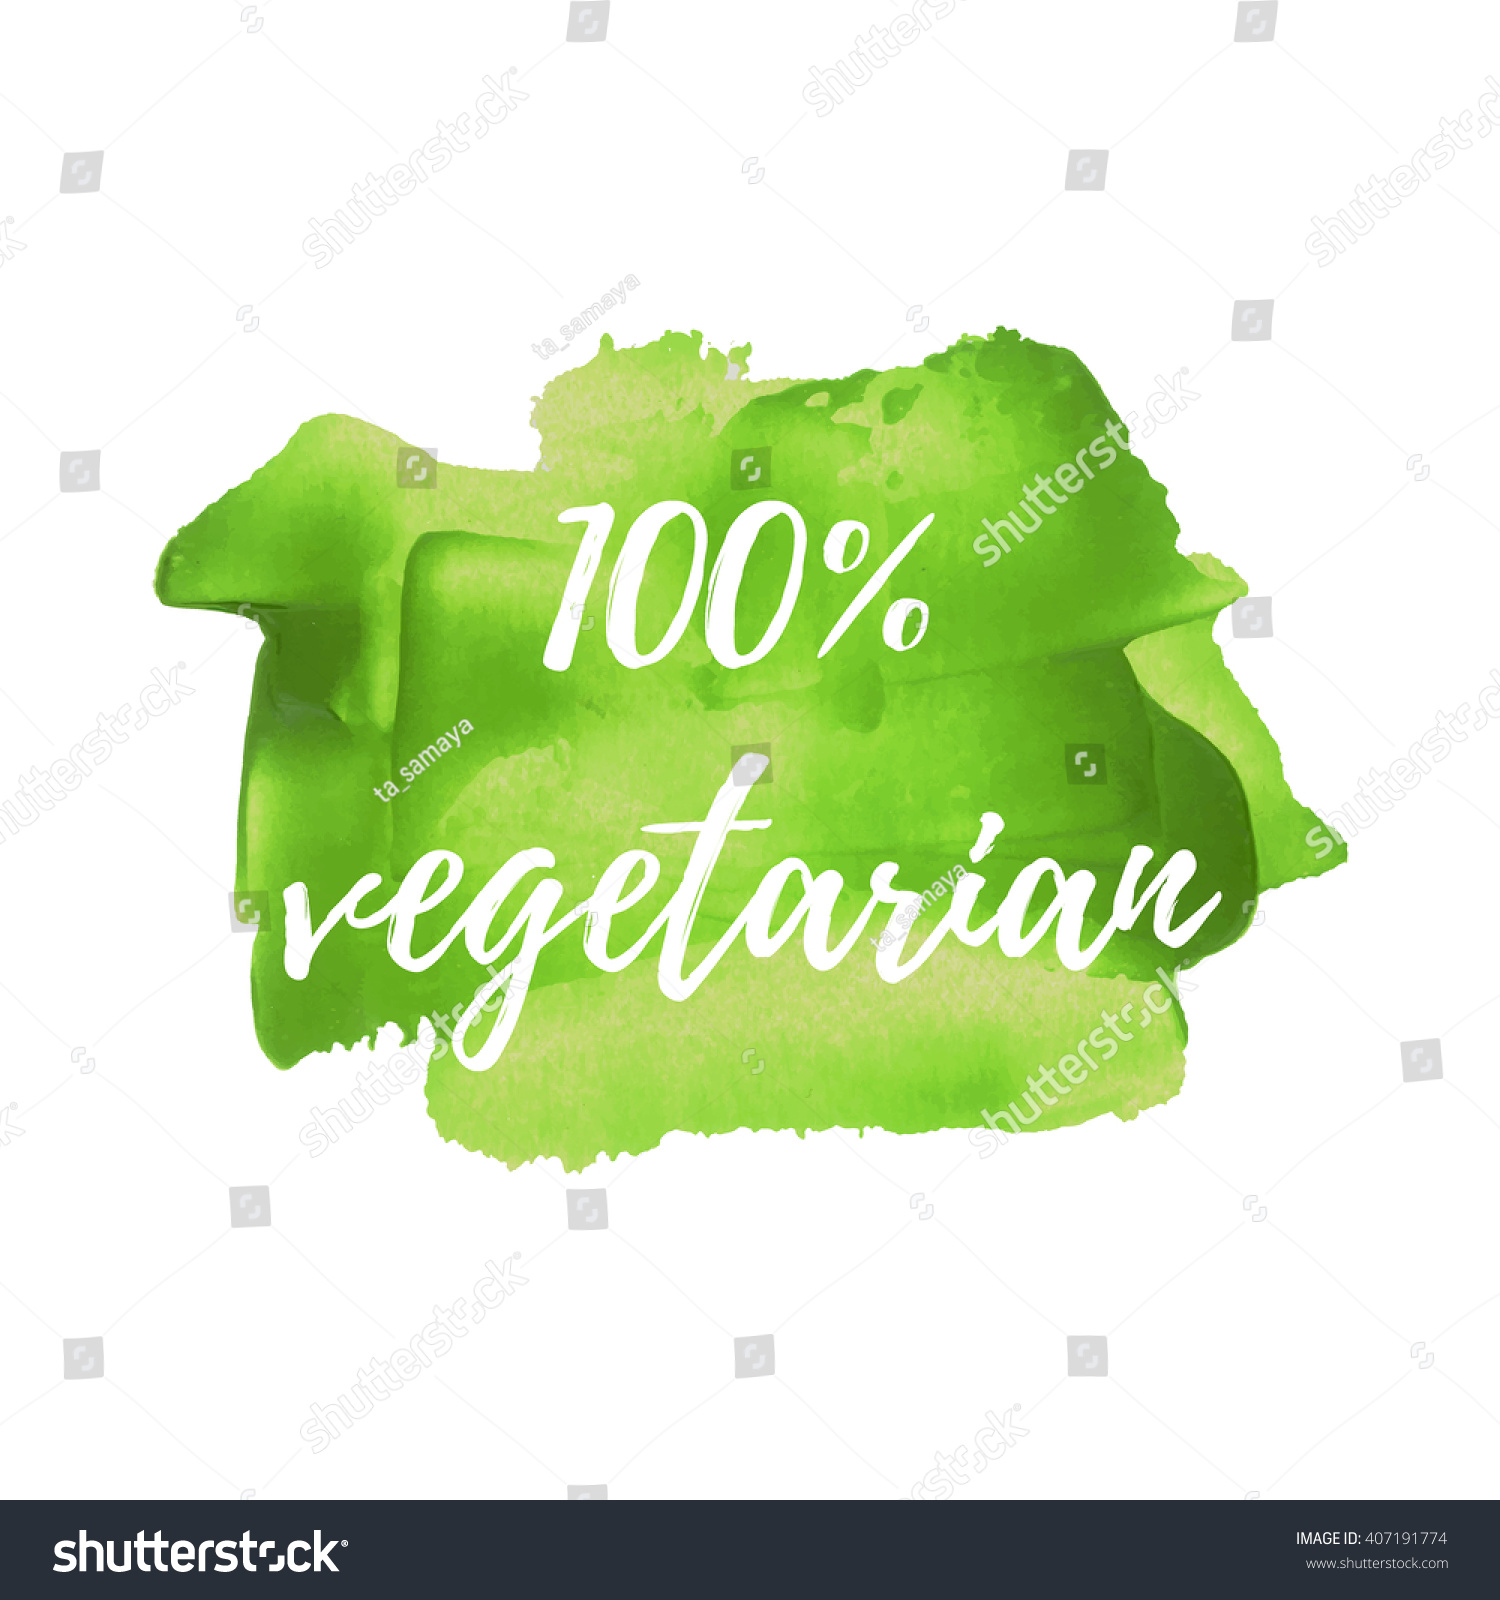 100 vegetarian product vector word text stock vector 407191774 100 vegetarian product vector word text icon symbol poster logo buycottarizona Image collections